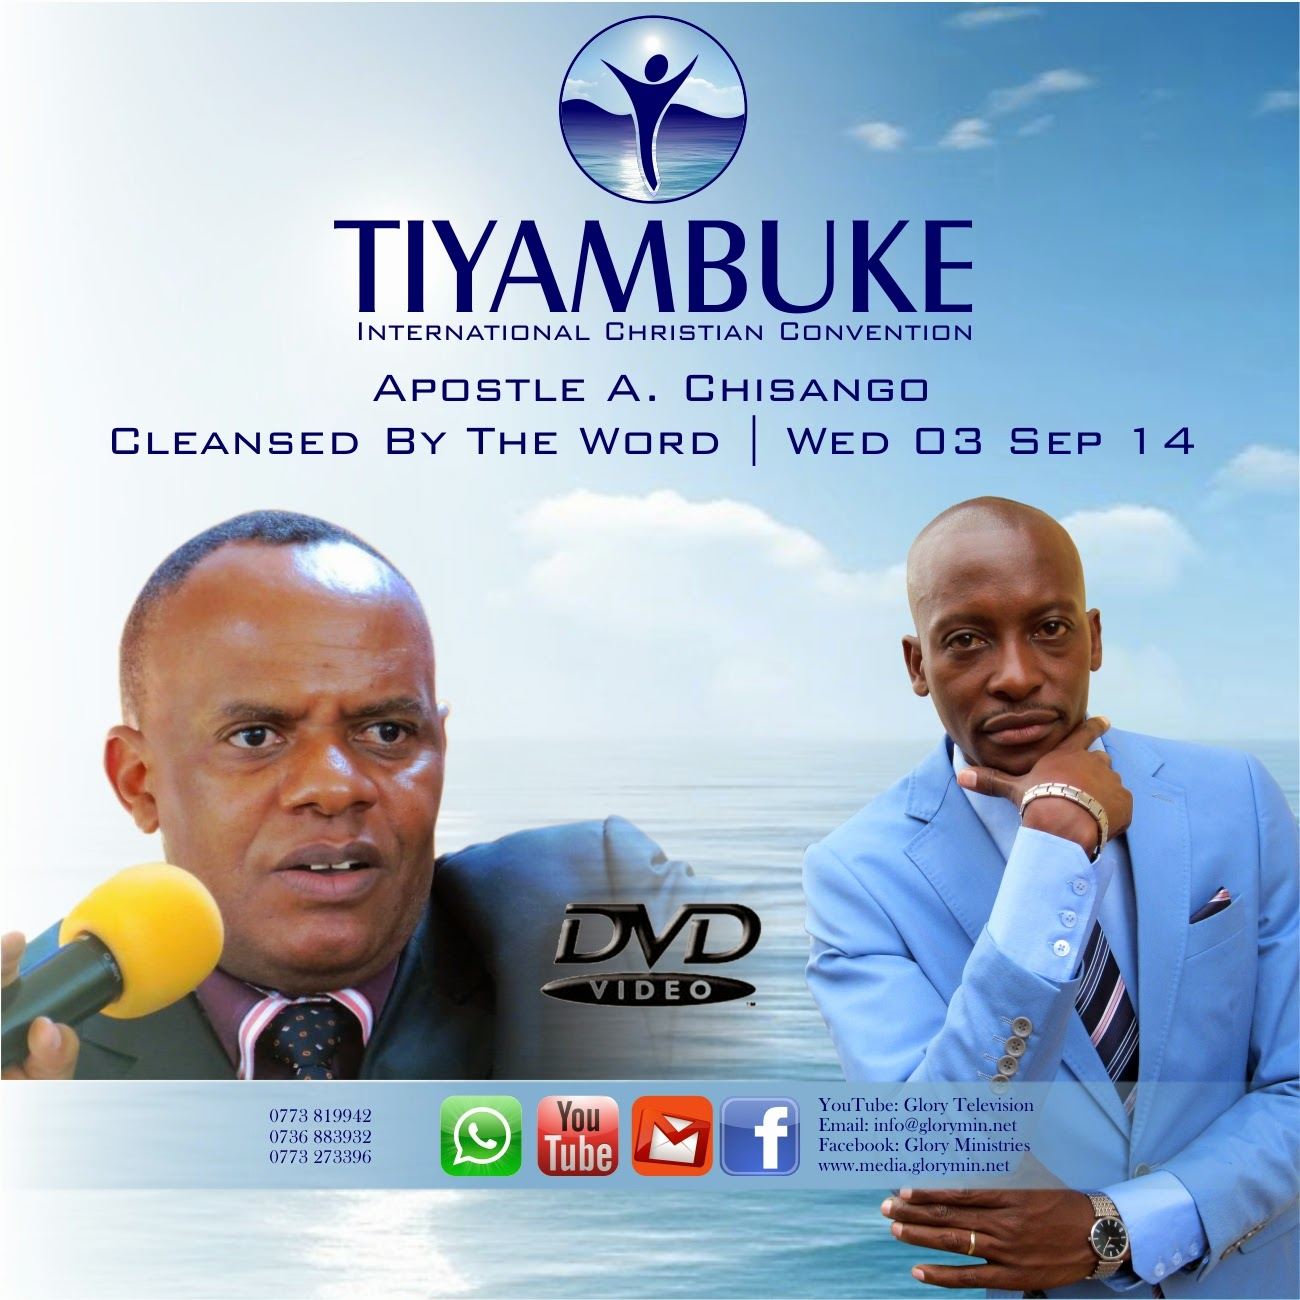 Apostle Alexander Chisango: We Are Cleansed By The Word